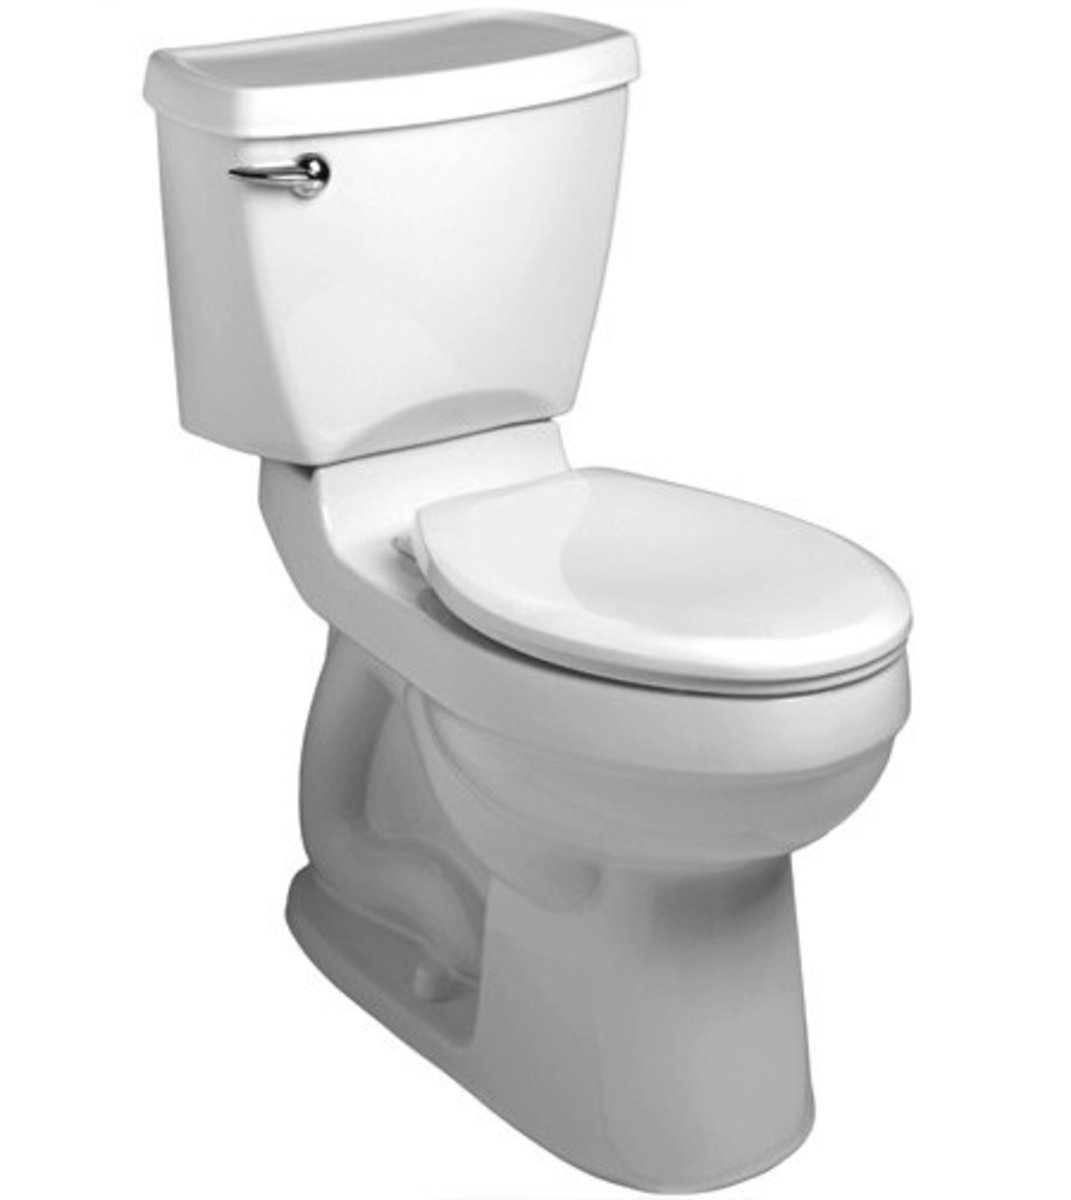 Two High-Flow Toilet Brands That Never Clog